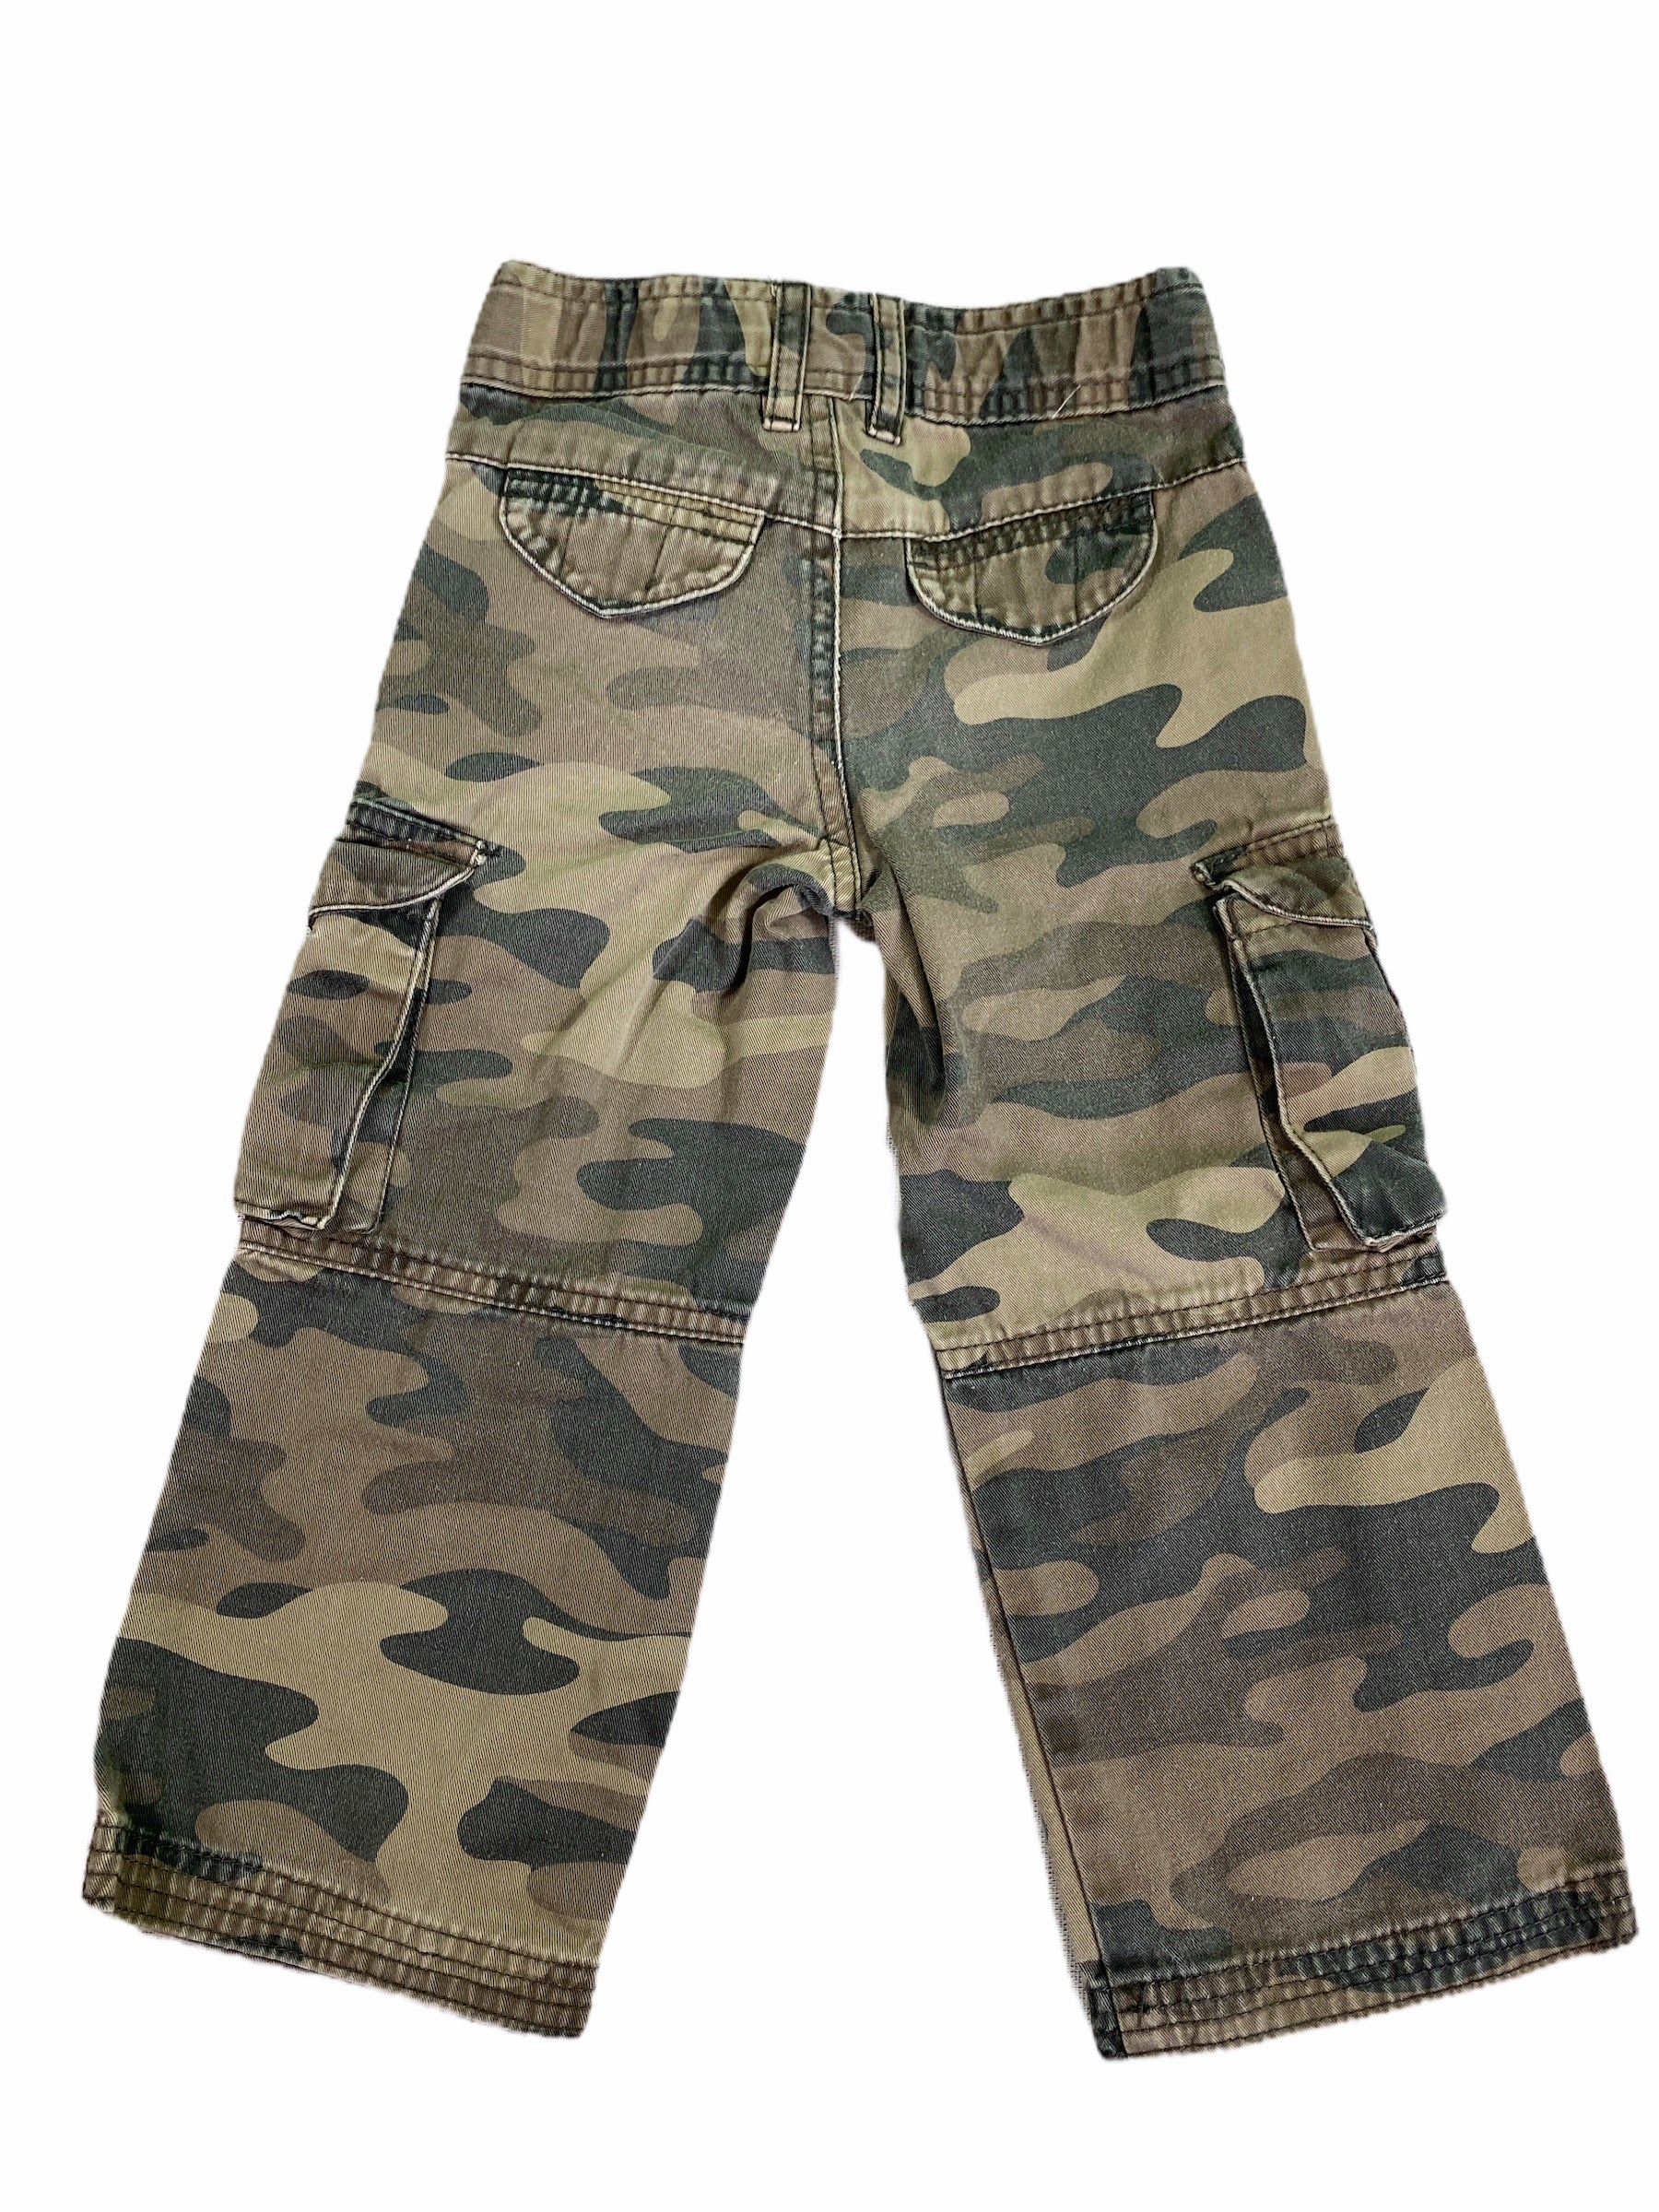 Carter's Camo Cargo Pants (2T Boys)